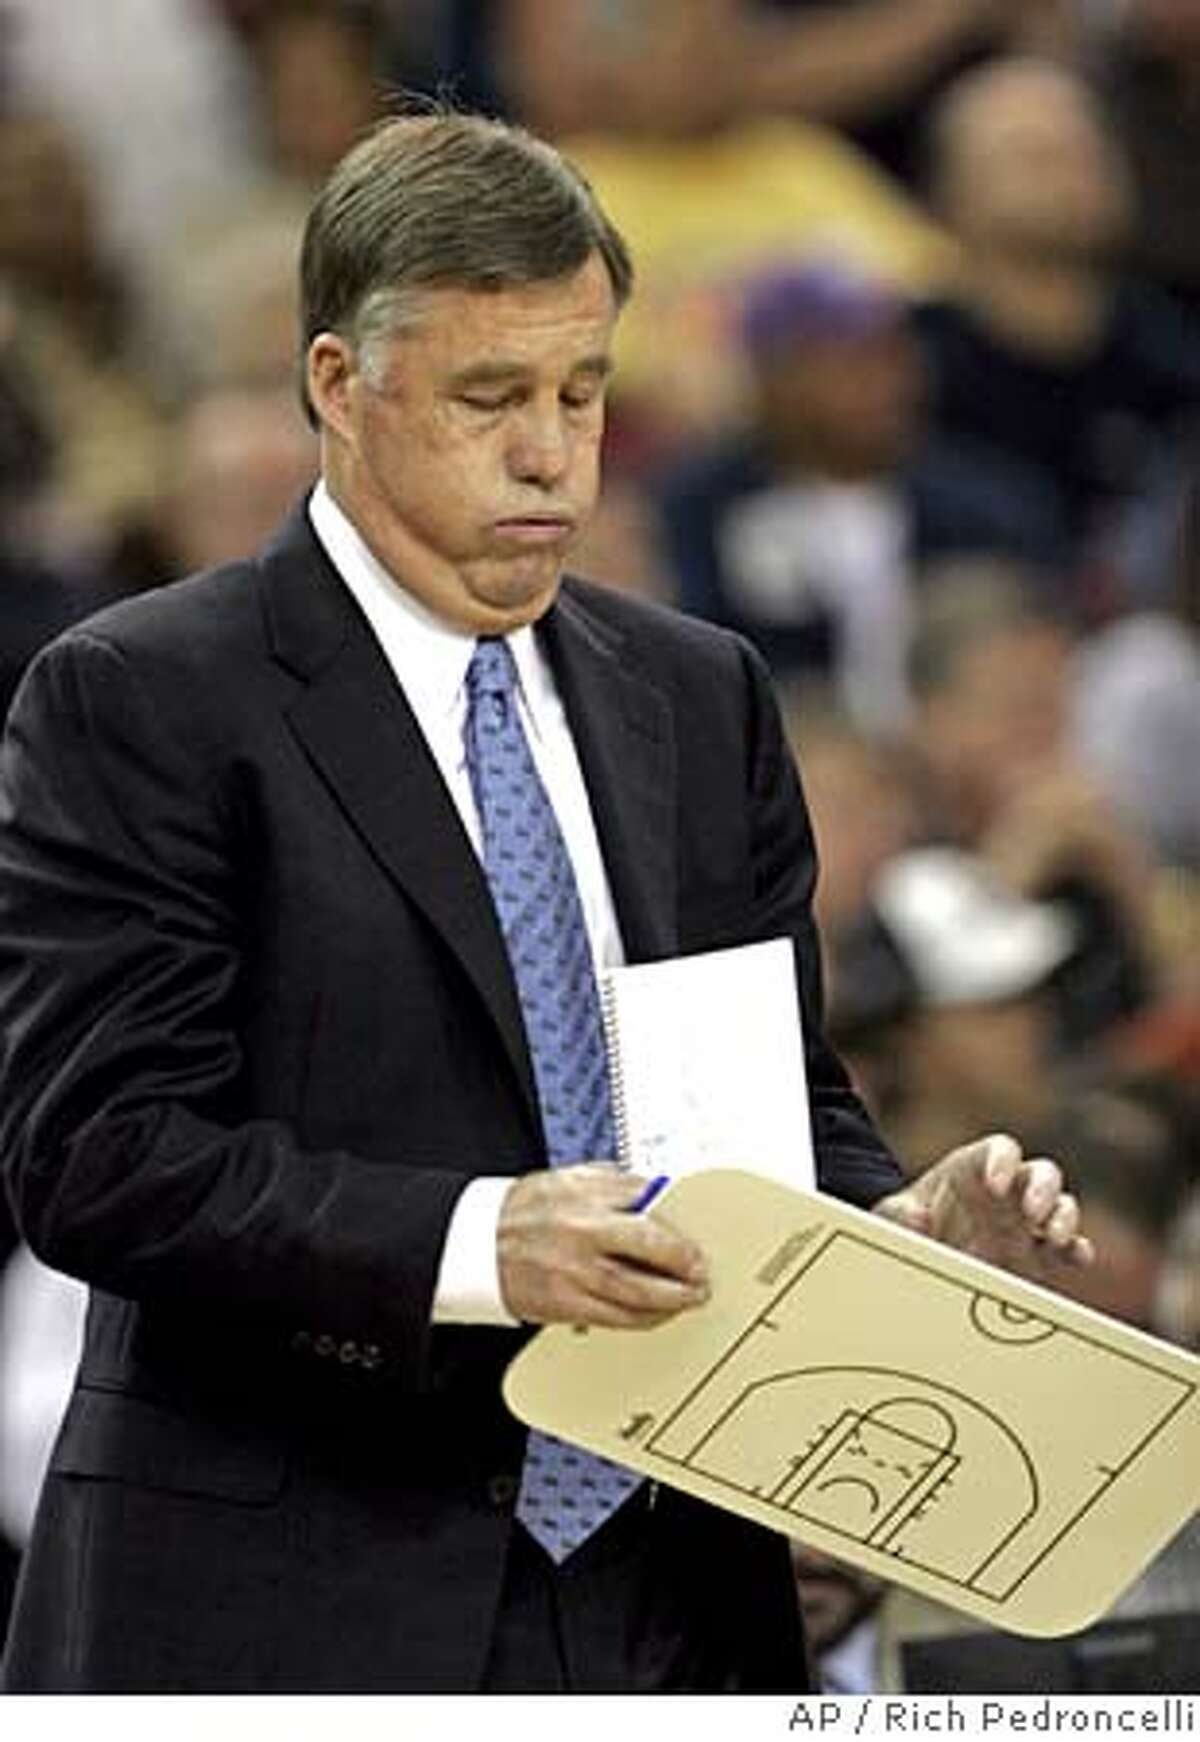 Golden State Warrors head coach Mike Montgomery sighs as he takes a time out in the fourth quarter of the Warrriors' 102-77 loss to the Sacramento Kings in an NBA basketball game in Sacramento,Calif., Tuesday, Feb. 21, 2006. (AP Photo/Rich Pedroncelli) EFE OUT